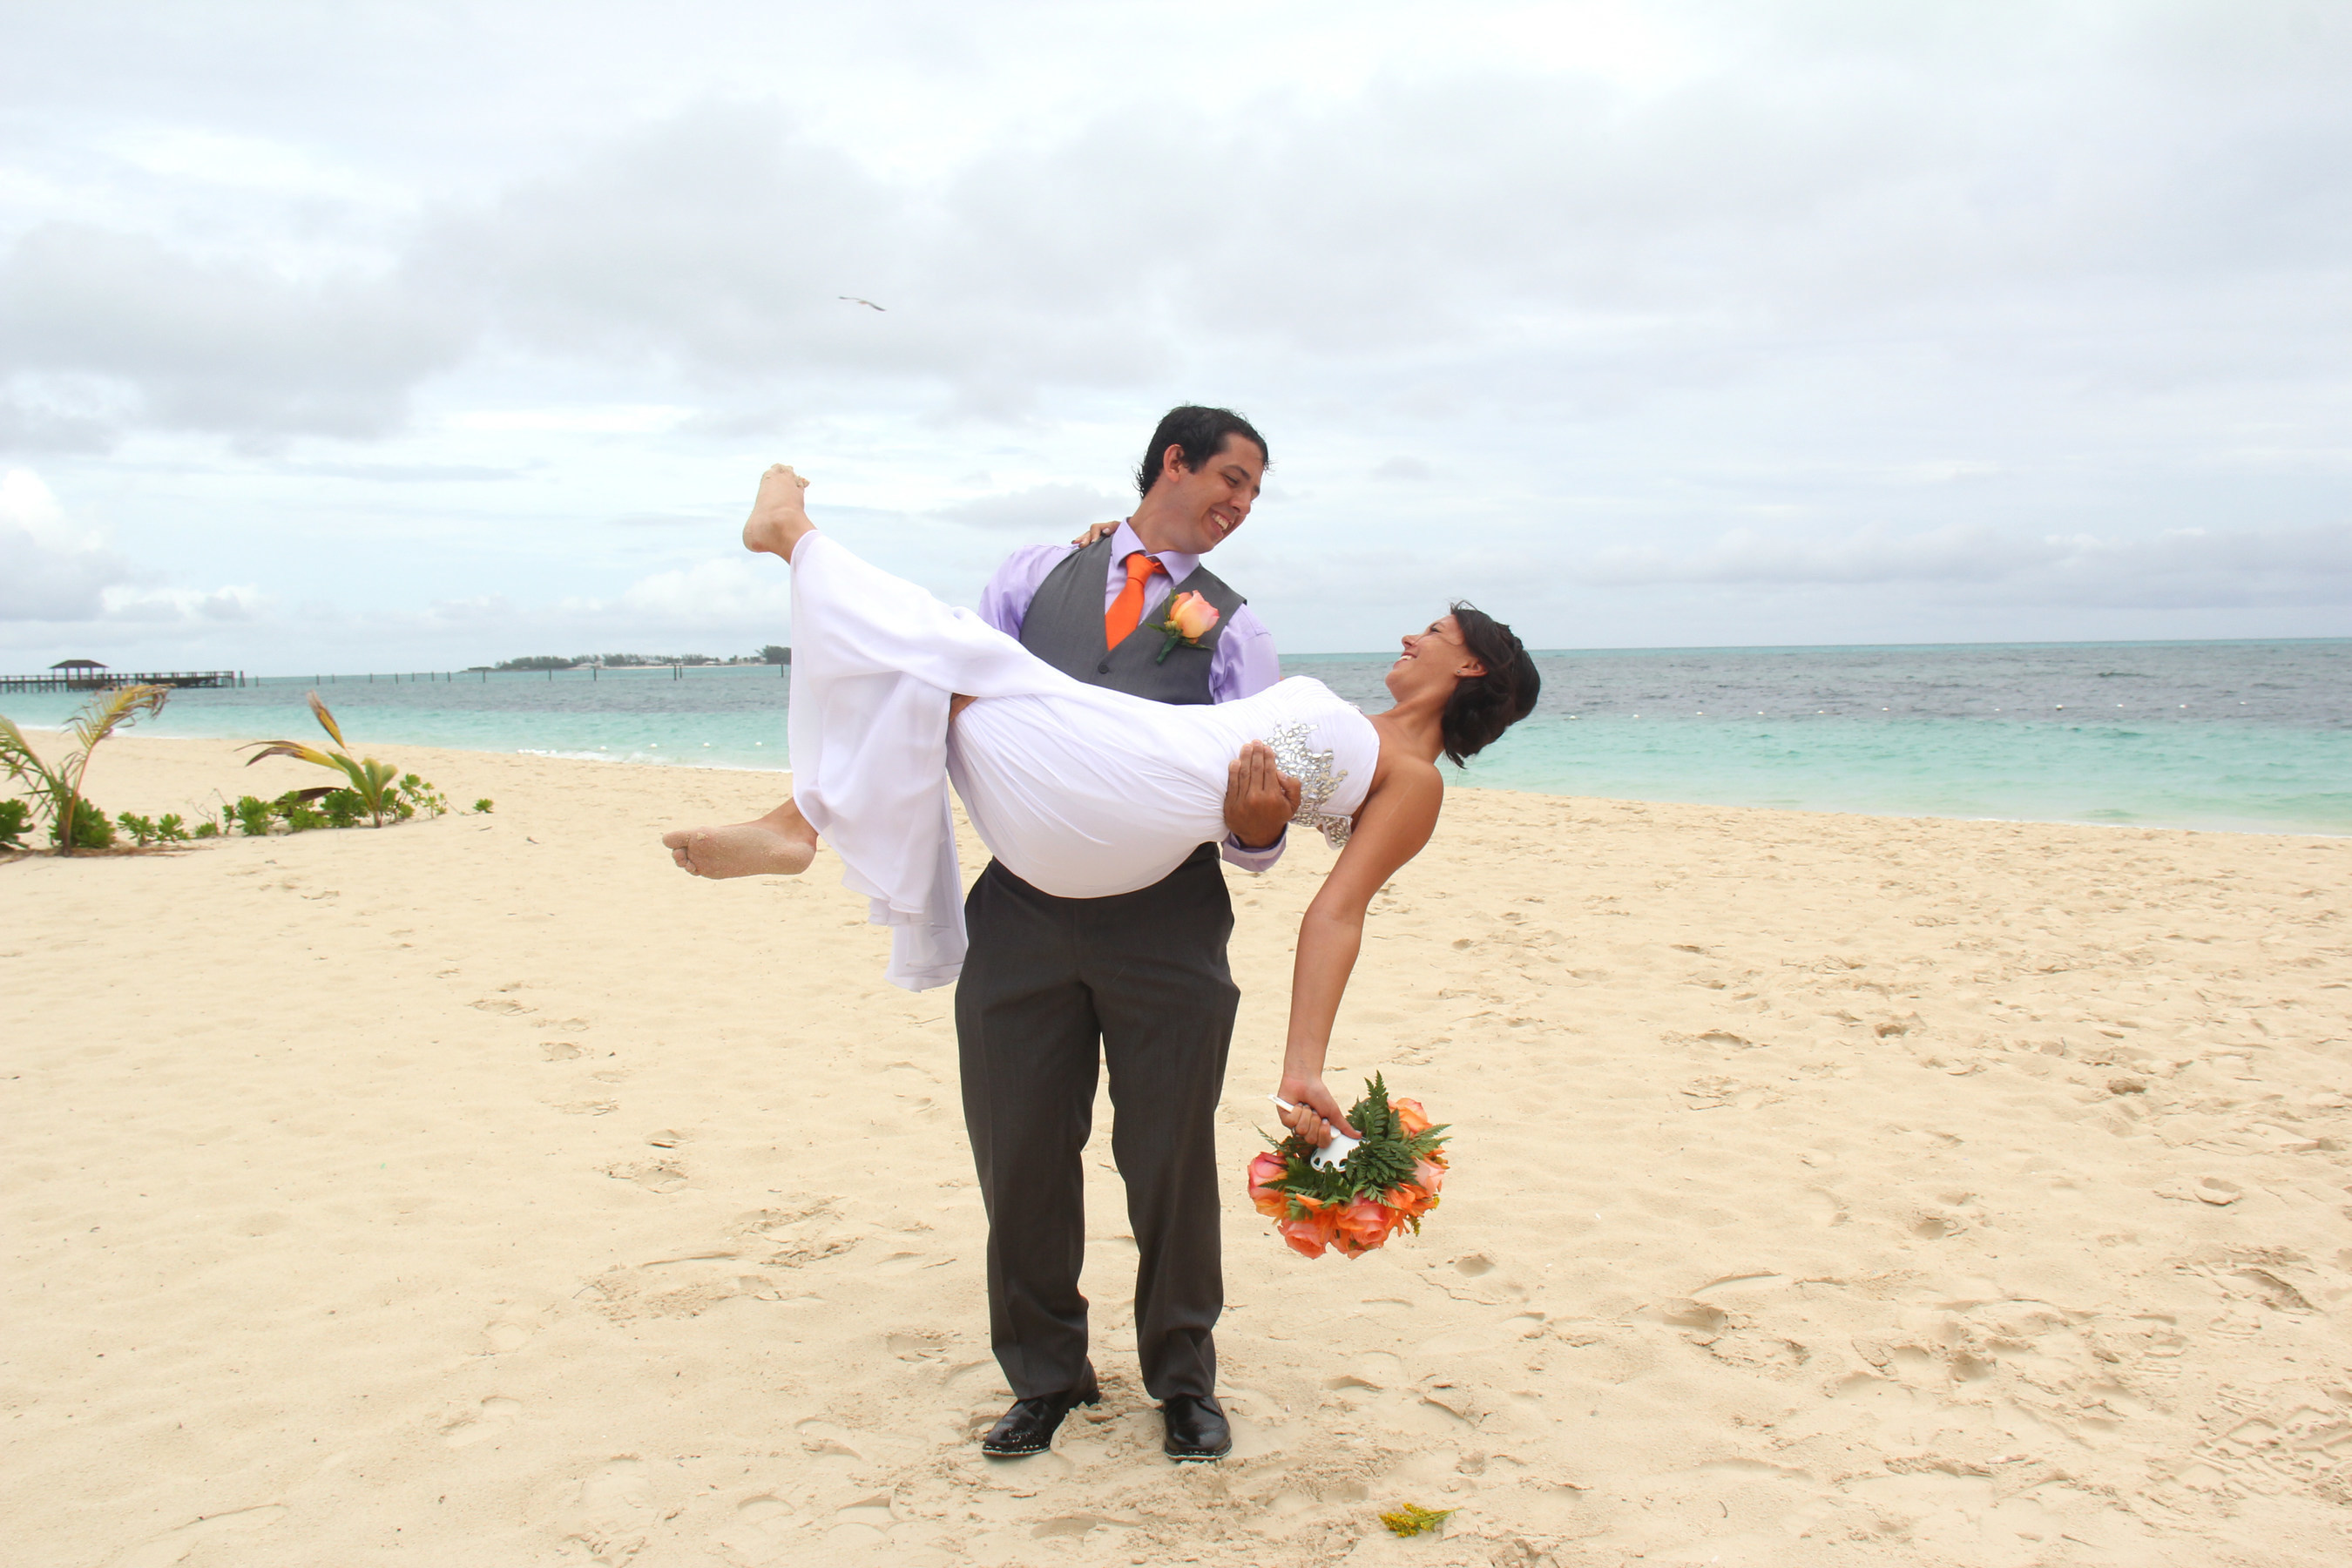 Newlyweds Matthew And Natashja After Their Dream Beach Wedding At Breezes Bahamas Which Took Place